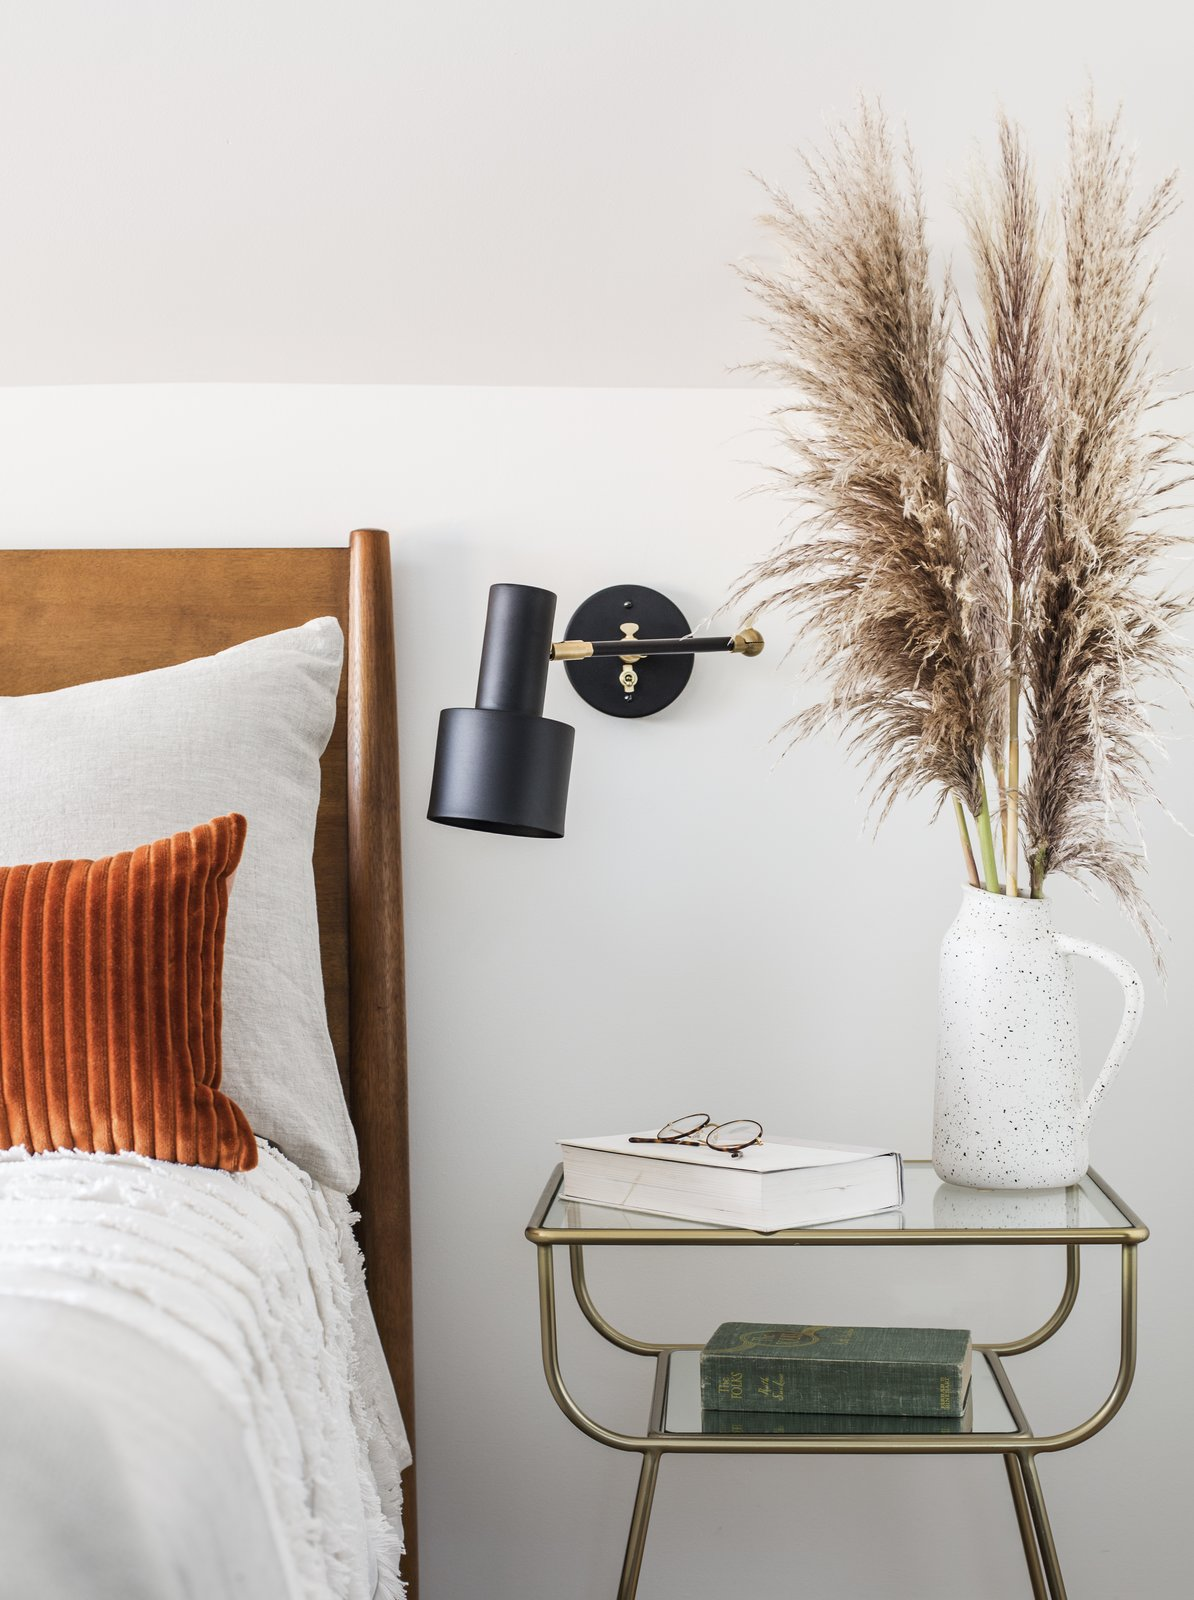 24 Indoor Wall Sconces We Love for Less Than $100